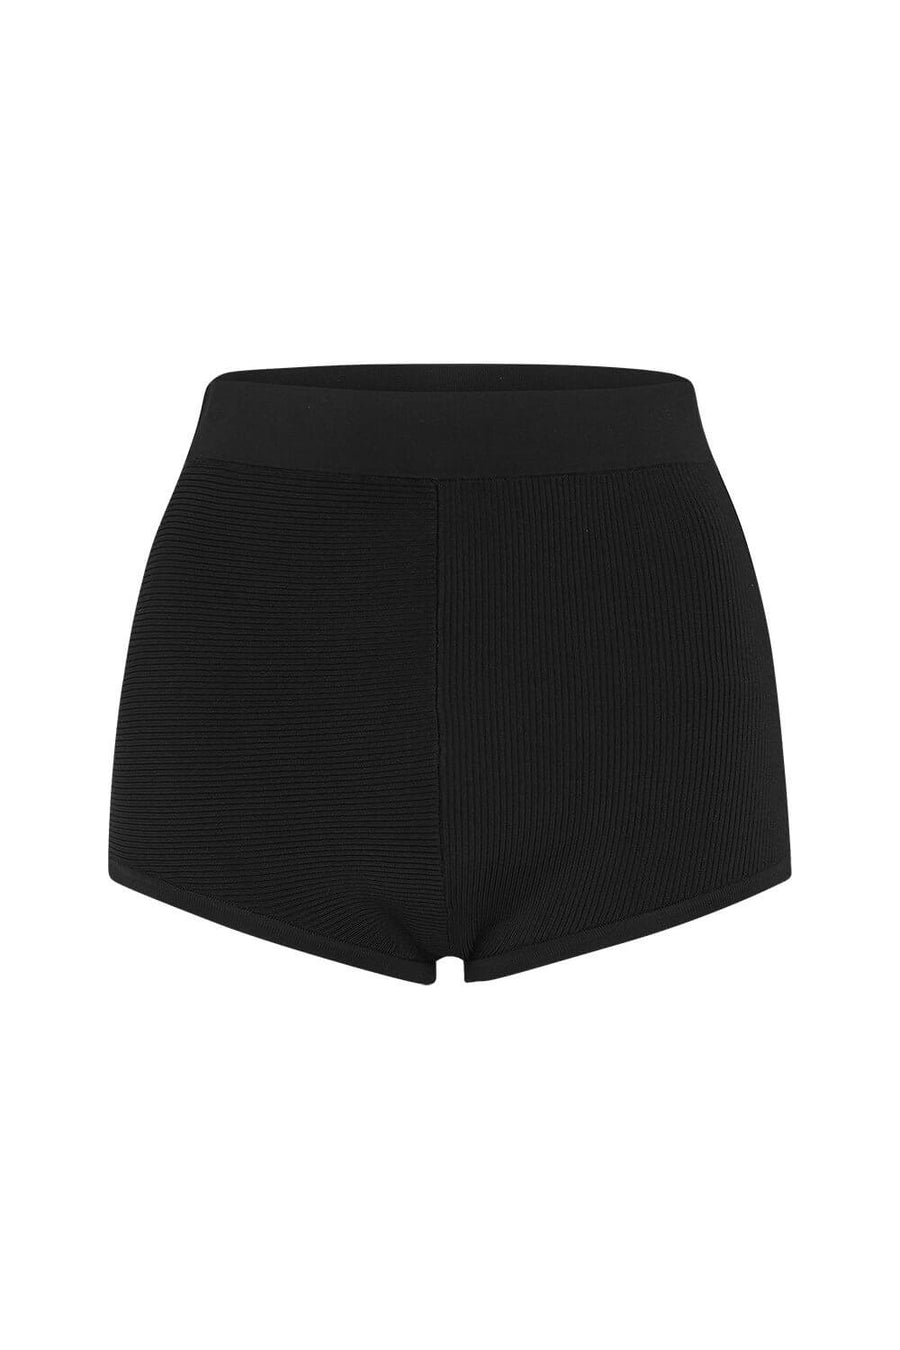 Sir The Label Annika Brief in Black from The New Trend